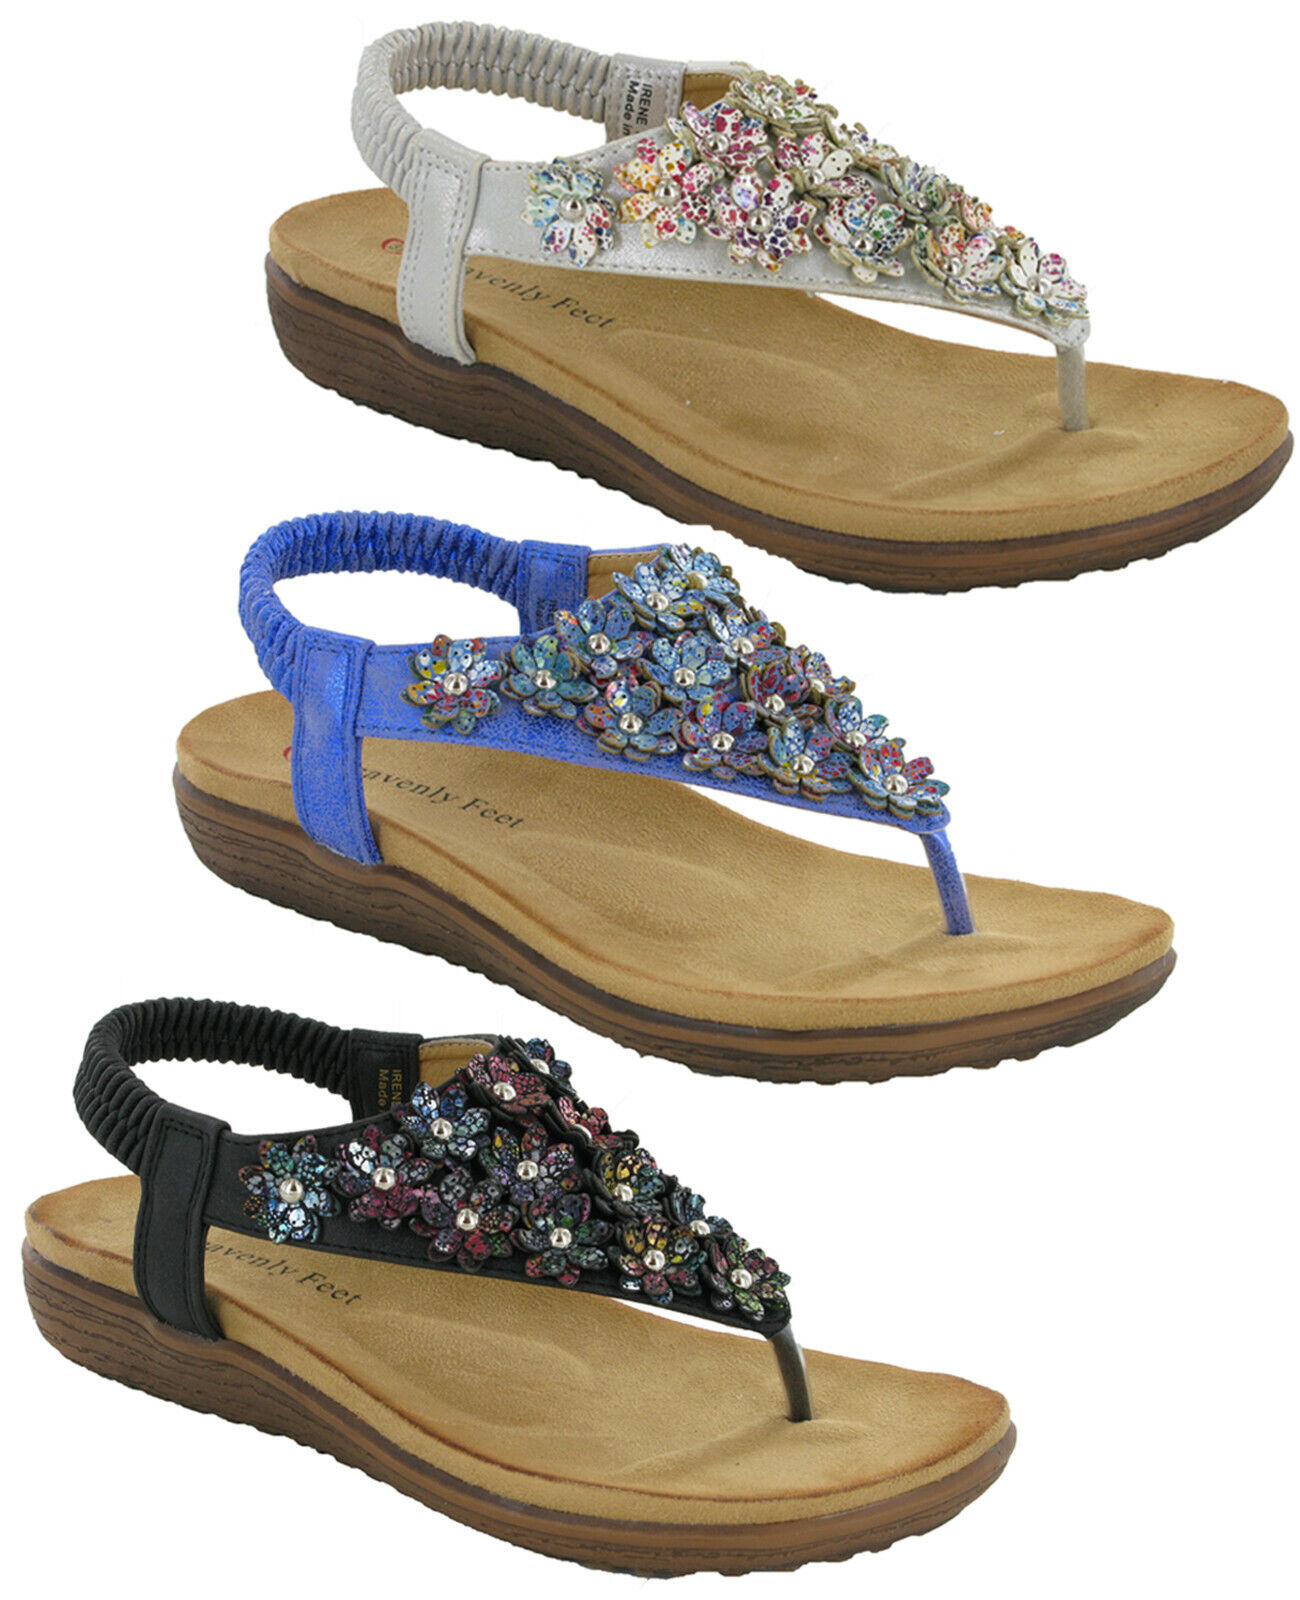 Details about  /Heavenly Feet Irene Ladies Sandals Flip Flops Padded Cushioned Comfort Shoes